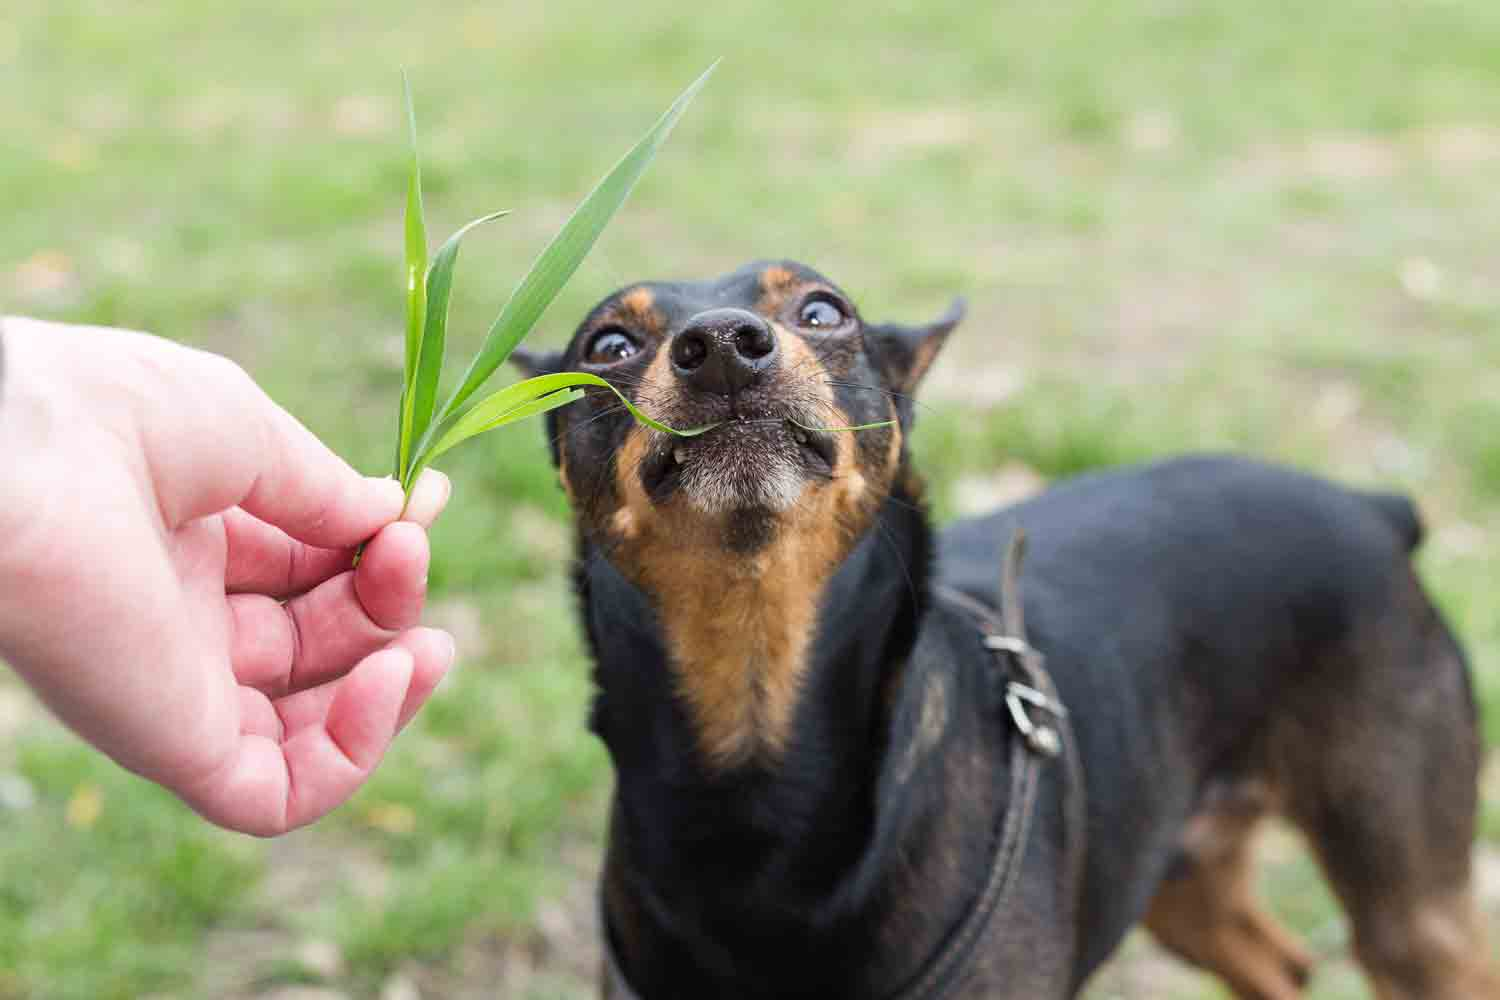 DigIn-dog-eat-grass.jpg